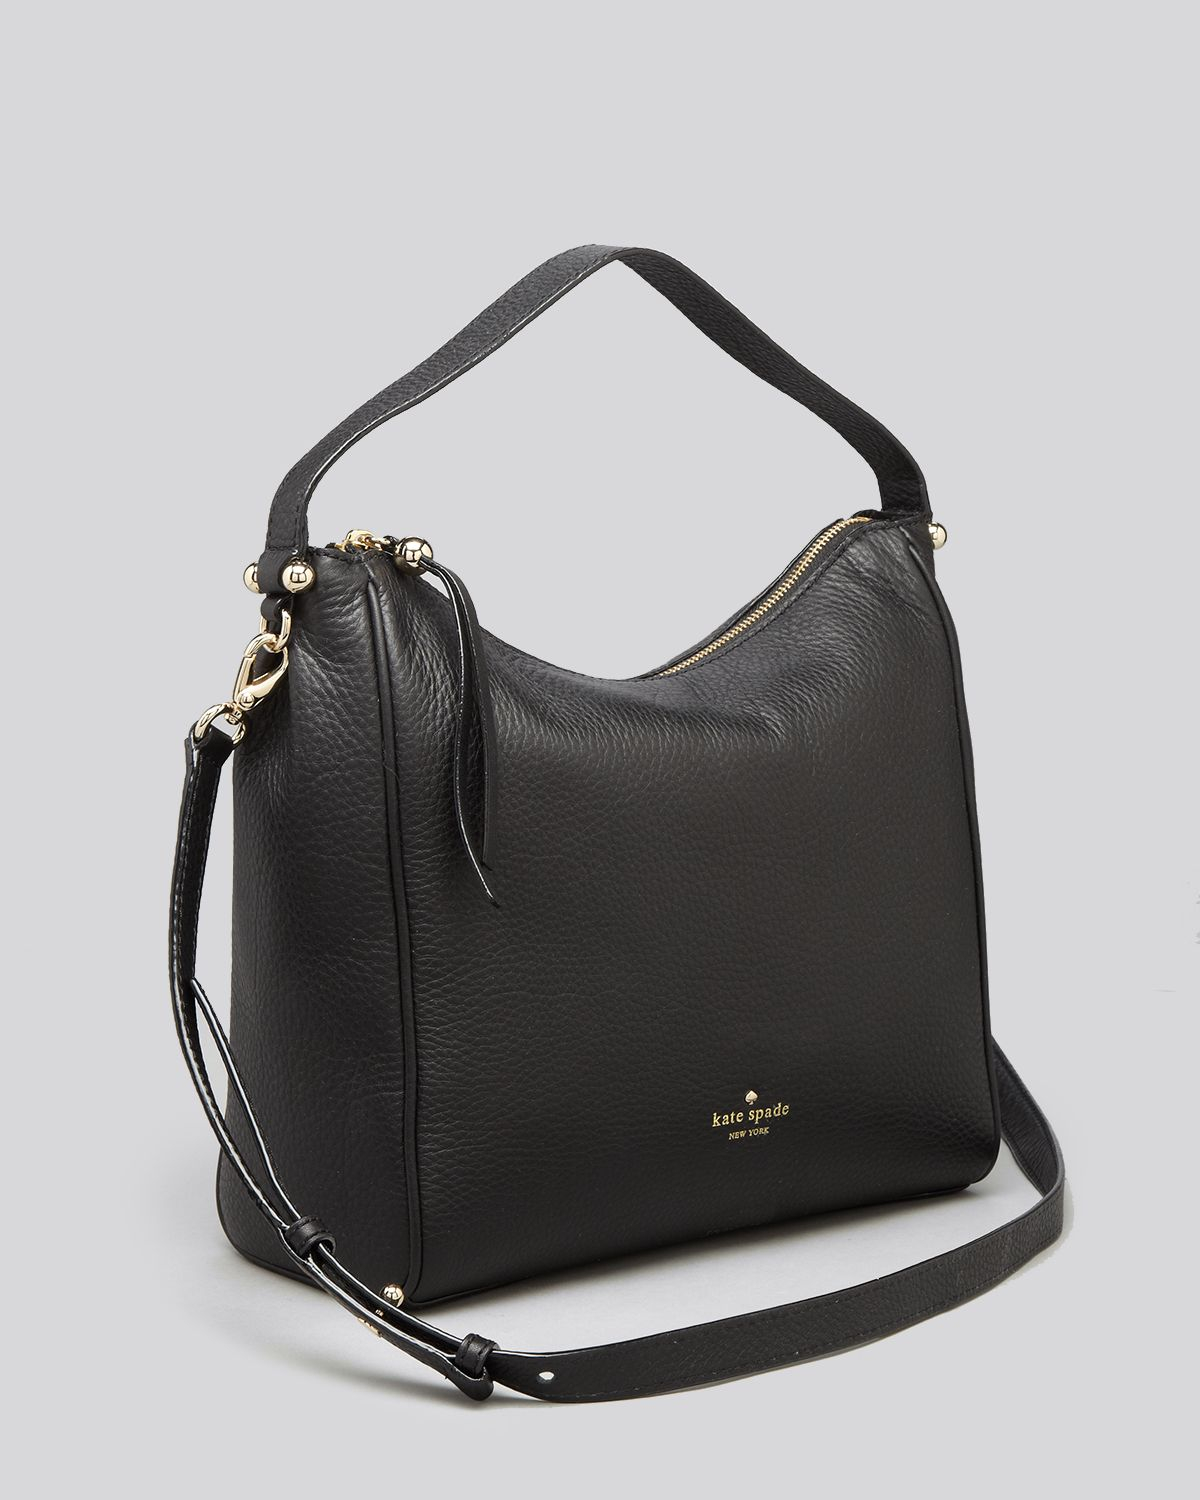 Lyst - Kate Spade Hobo - Charles Street Small Haven in Black c9dd2bcf3a665